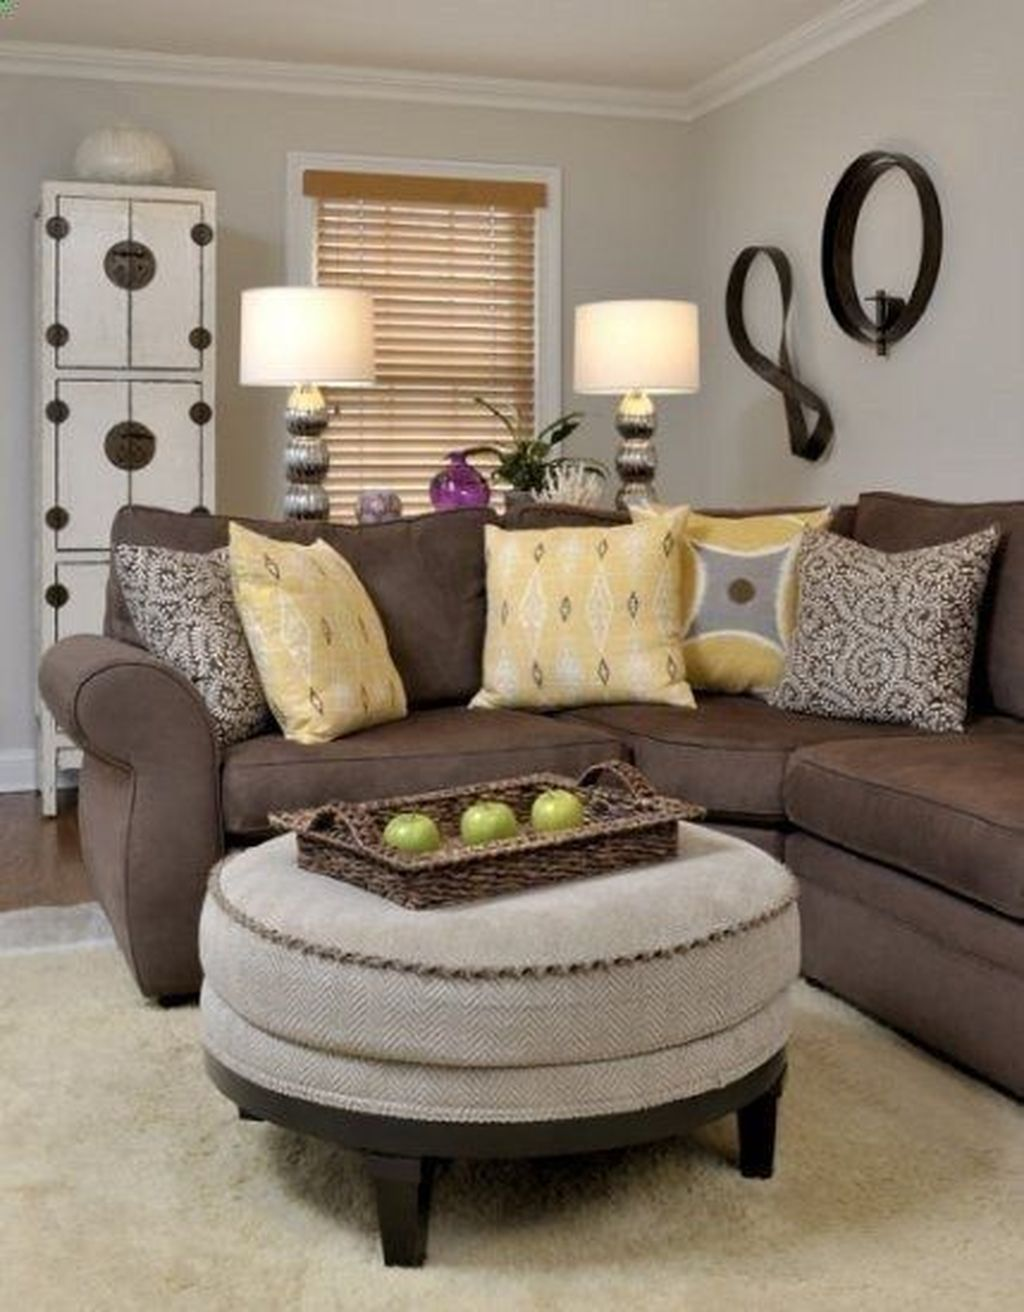 88 modern gray and tan living room decor ideas | room decor, living